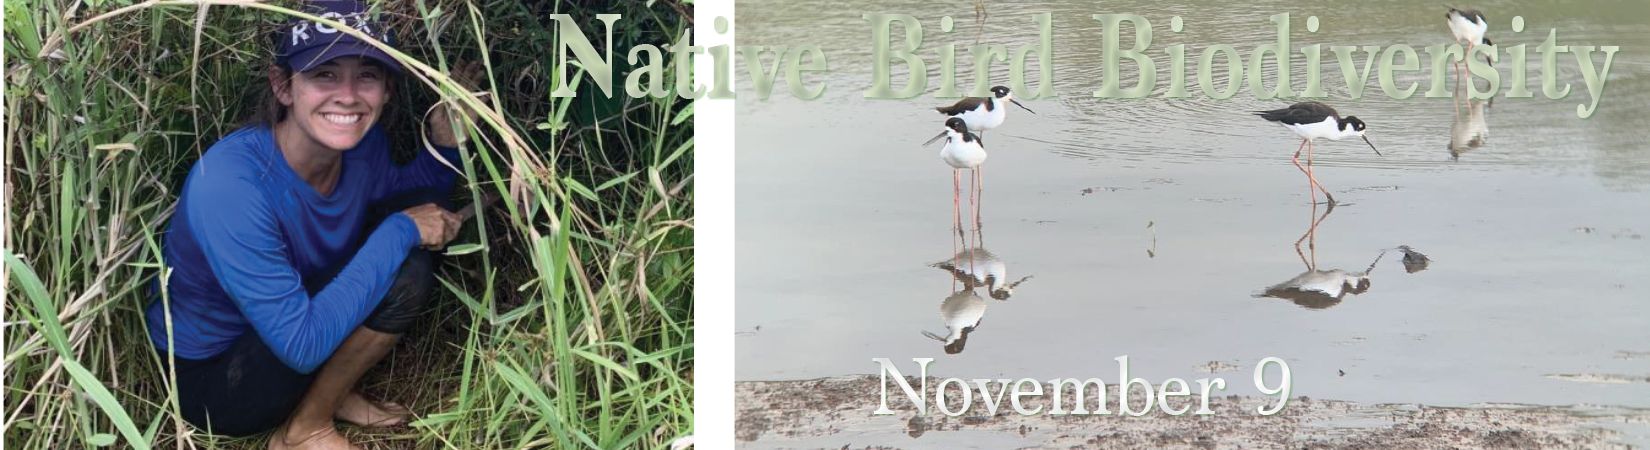 Native Bird Biodiversity, Nov 9